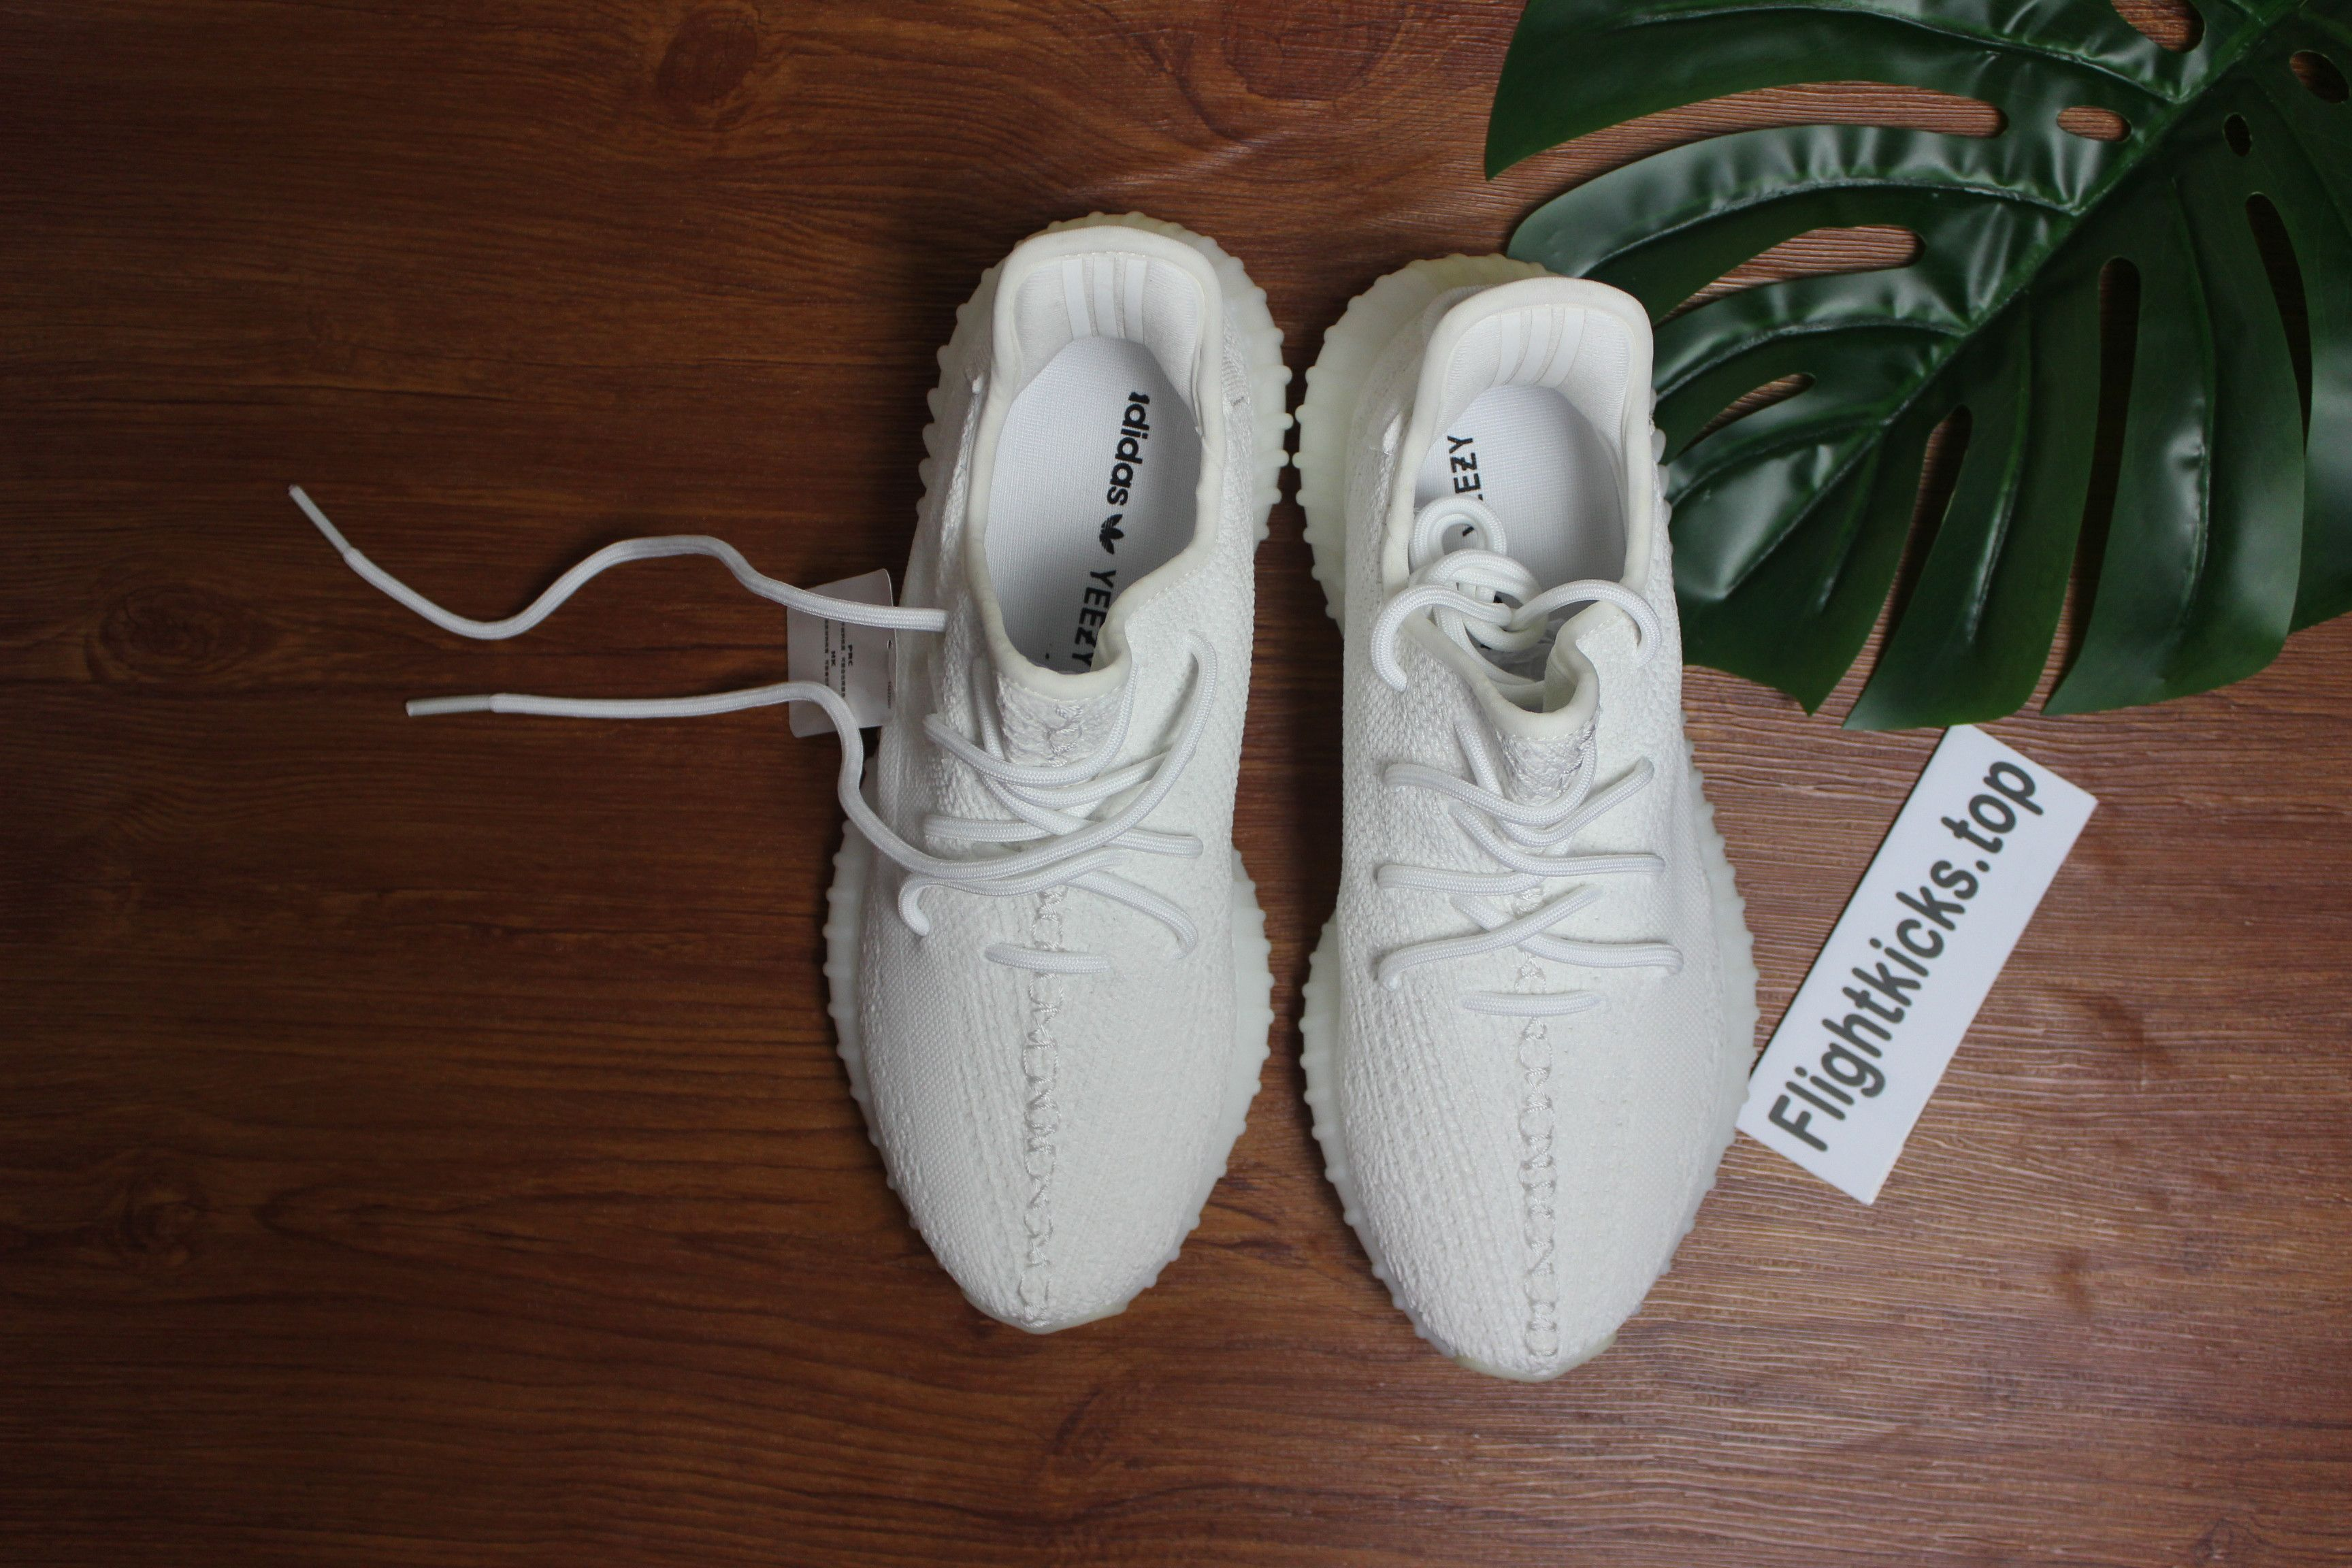 5f7879387a77c Adidas yeezy boost 350v2 cream white size 4-14 best version ready to ship  from www.flightkicks.top